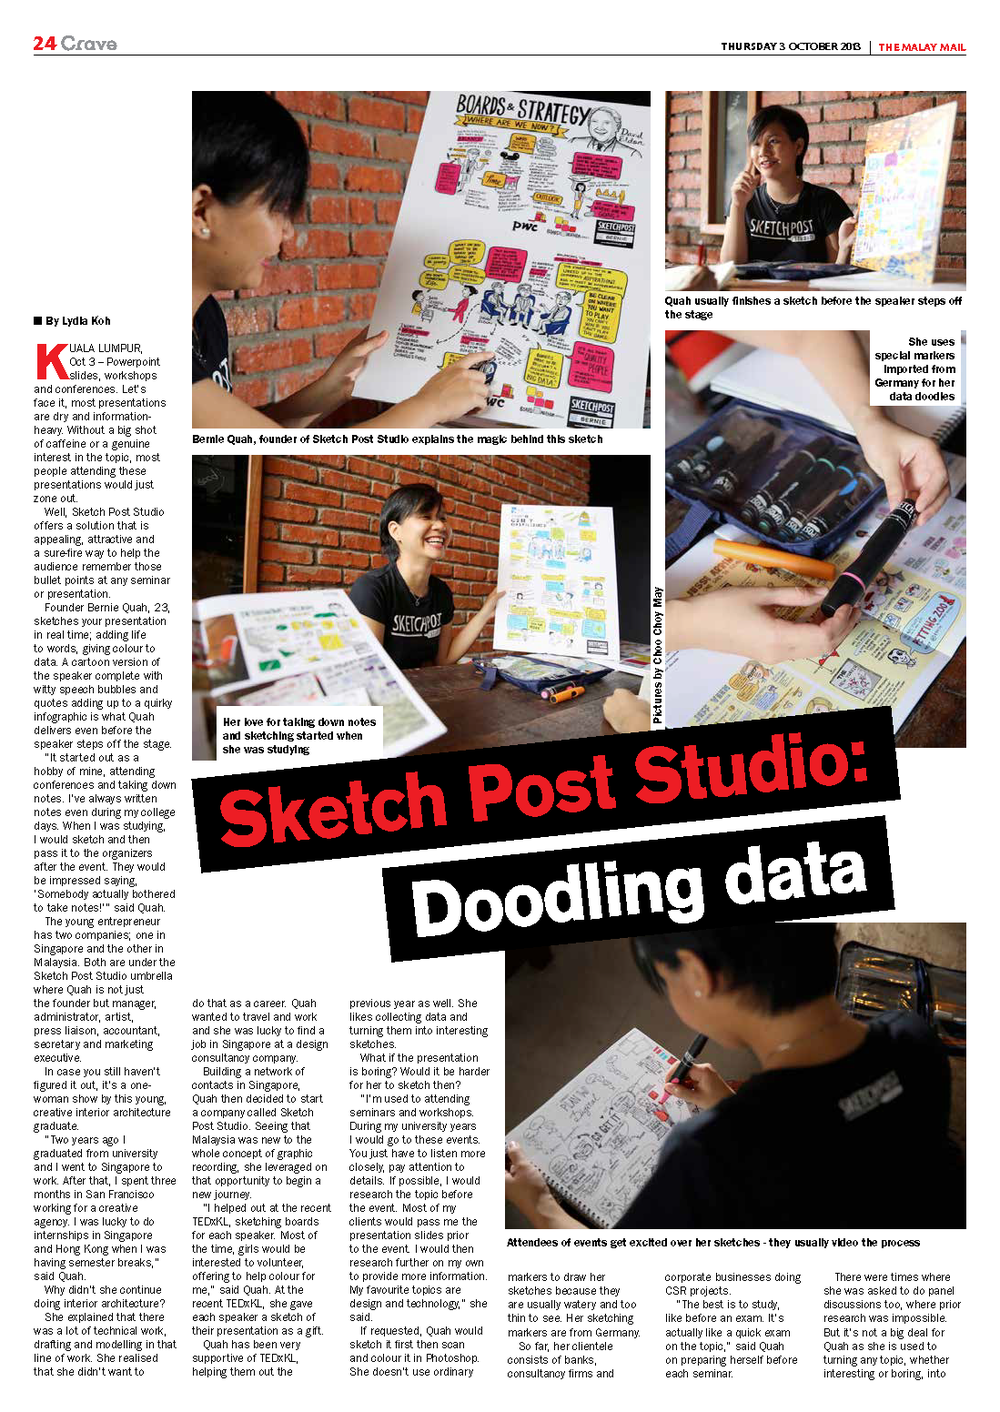 sketchpoststudio-media-malay-mail-20131003_Page_1.png